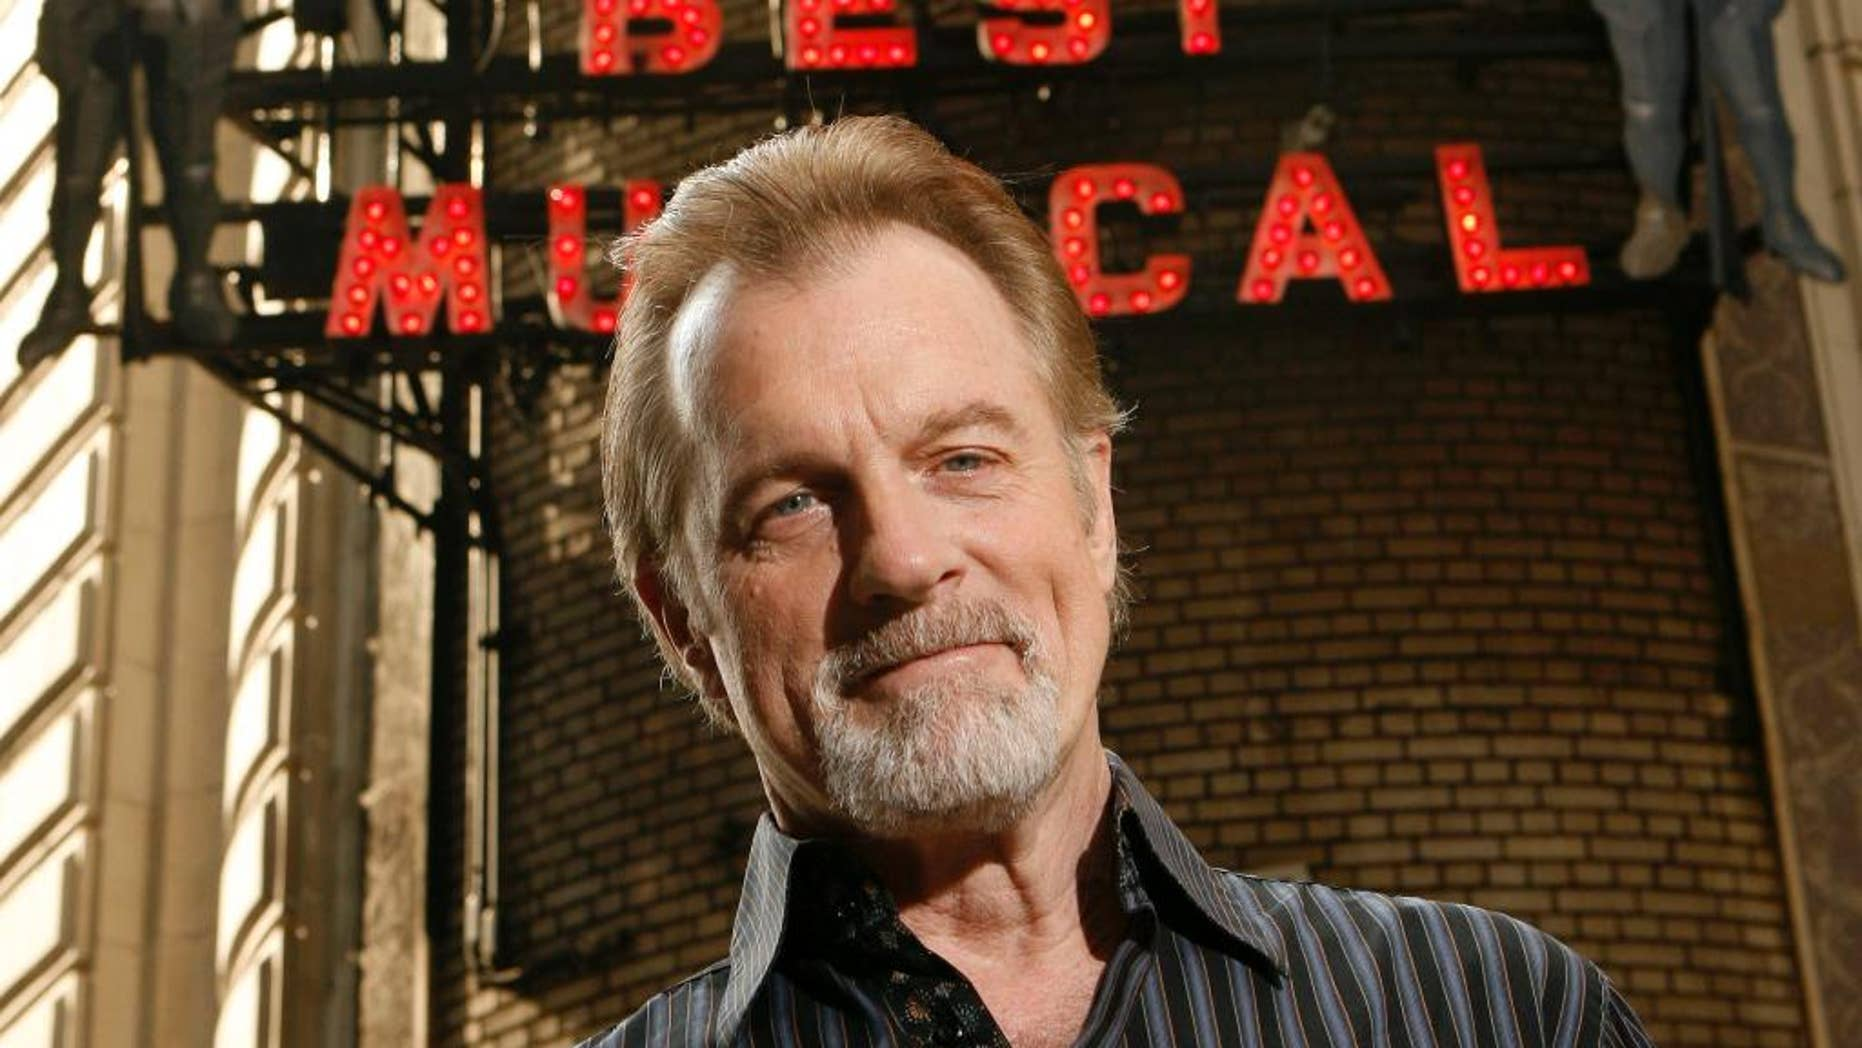 """FILE - In this July 1, 2008 file photo, actor Stephen Collins poses for a picture outside of the Shubert Theatre in New York. ABC said Thursday, Oct. 9, 2014, that Collins, who was supposed to repeat a one-time role as a television anchorman on the hit Thursday drama, will have his scenes eliminated. The network said it isn't clear how the episode will be rewritten. It was scheduled to air later this season. New York police said this week they are investigating charges that the former """"7th Heaven"""" television dad molested a 14-year-old girl back in 1972. (AP Photo/Seth Wenig, File)"""